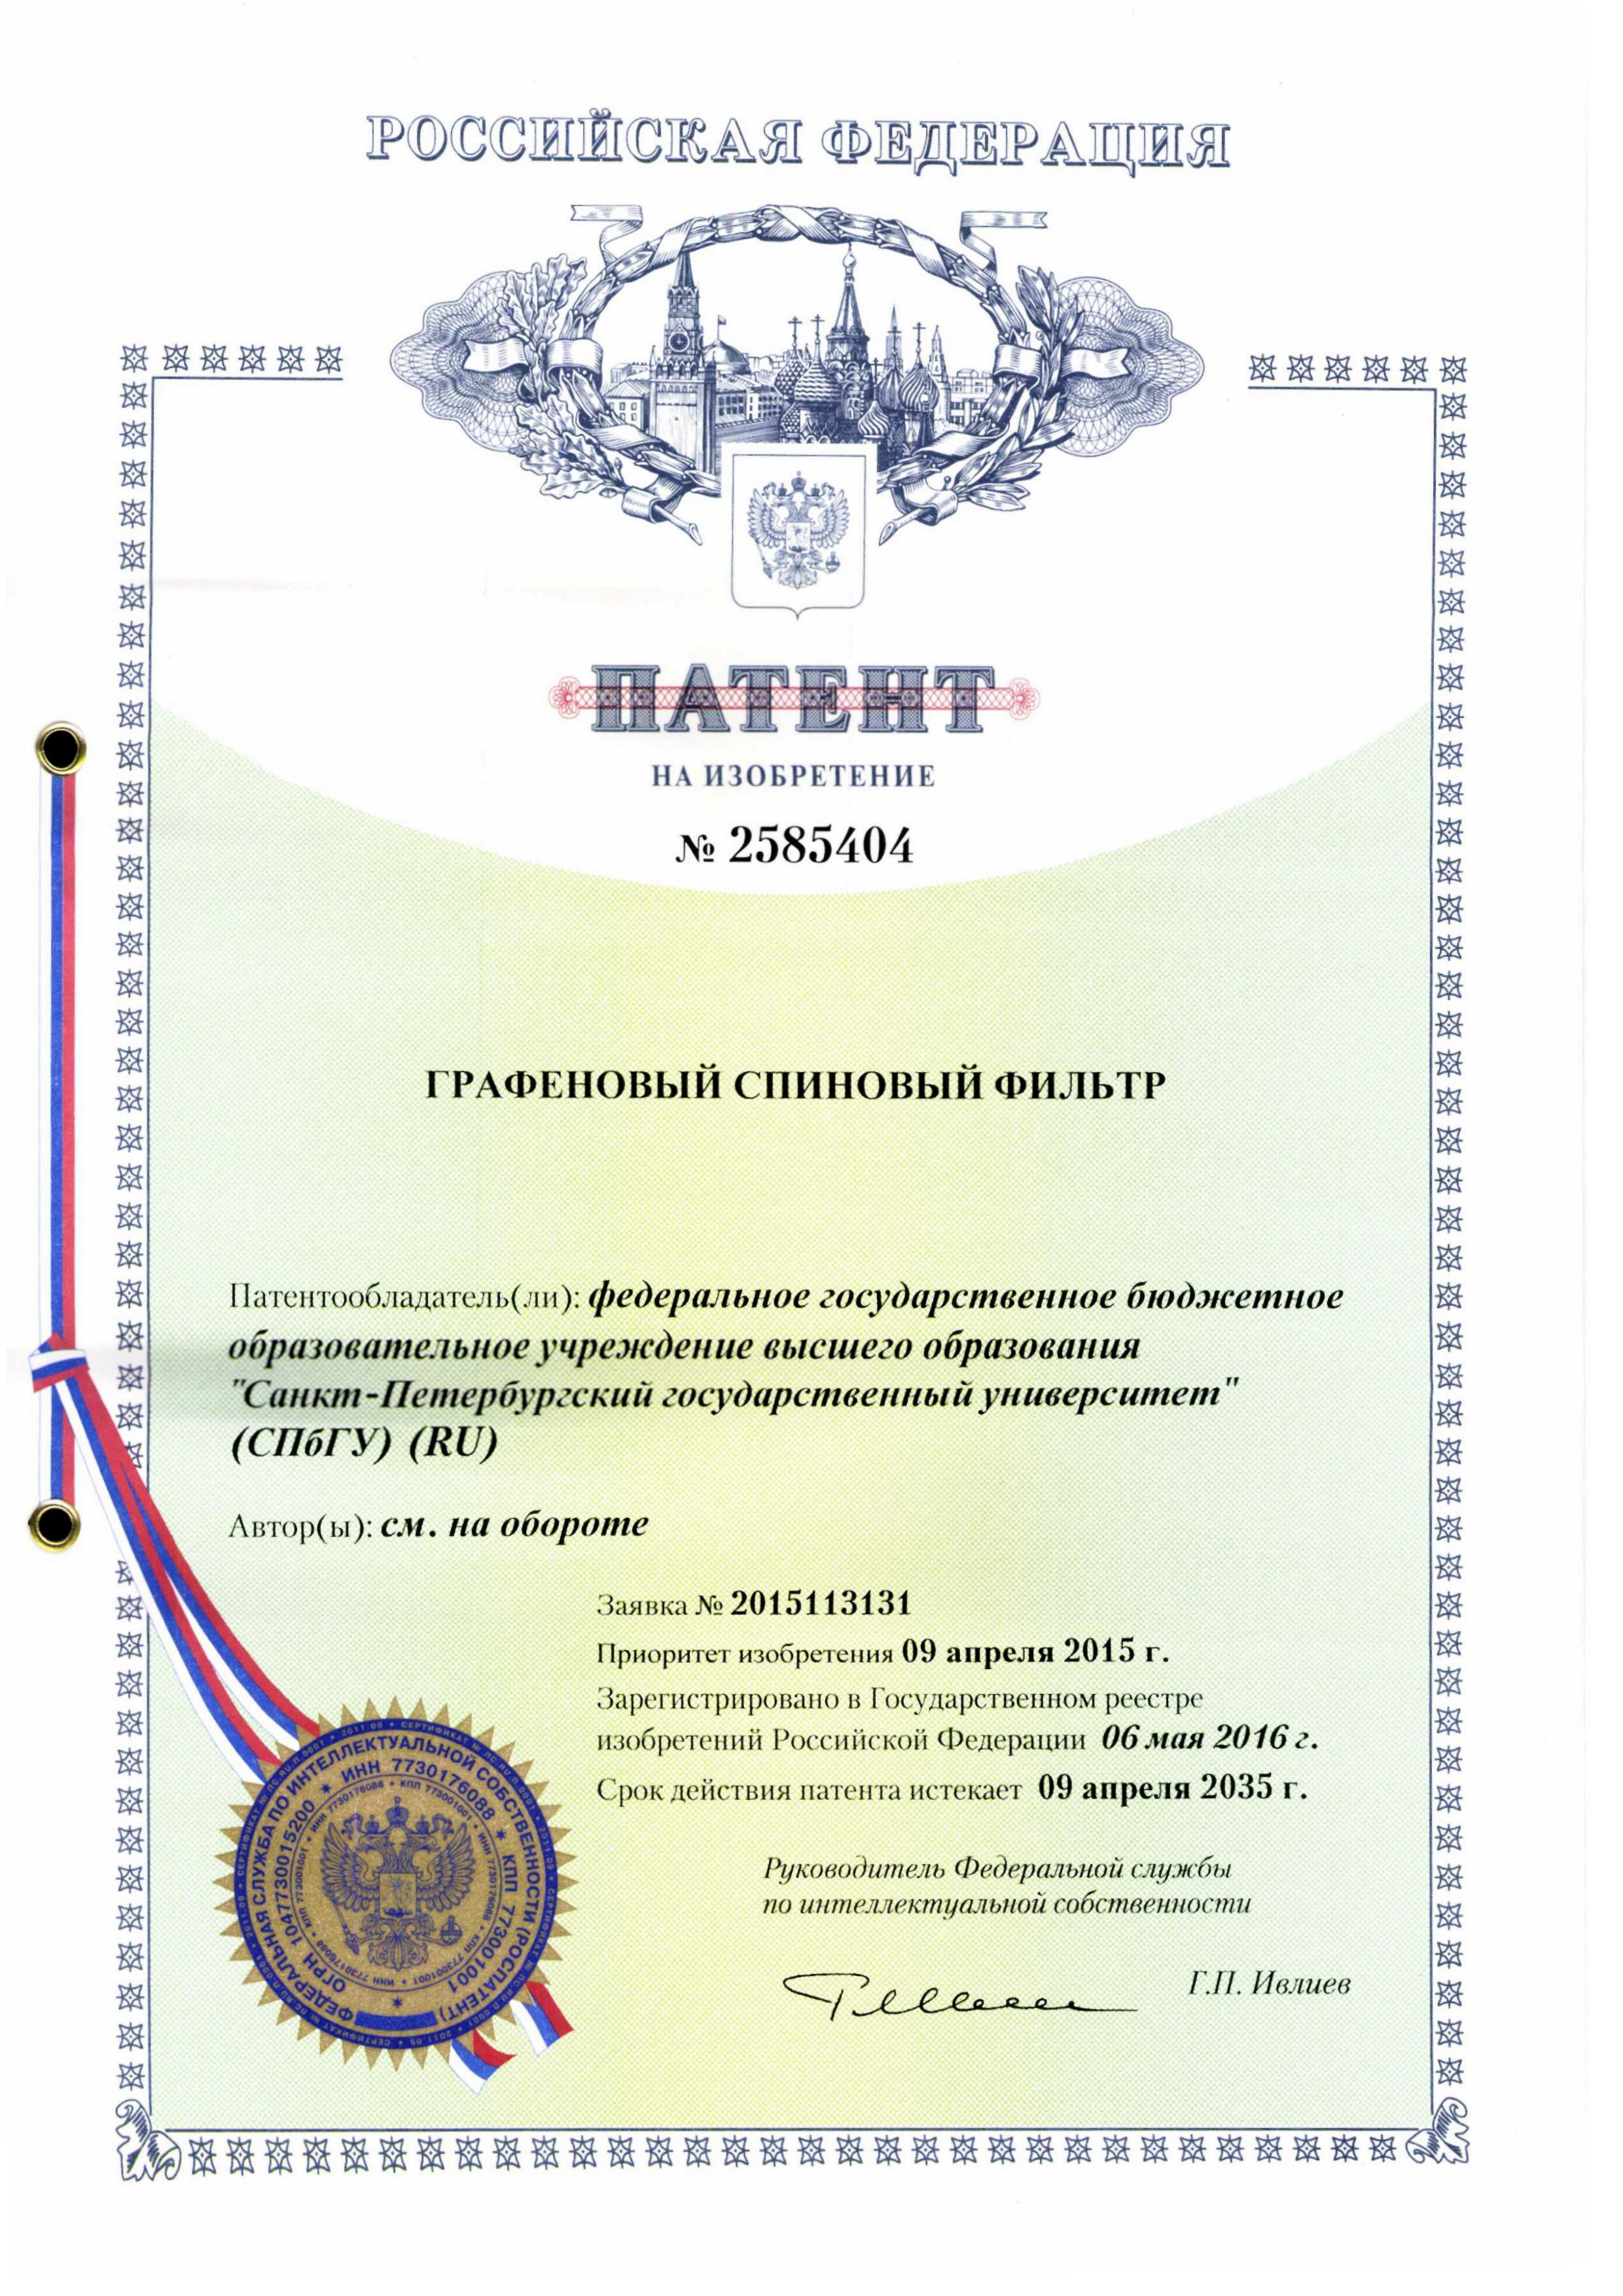 Certification patent graphene spin filter registered 6 may 2016 year xflitez Choice Image